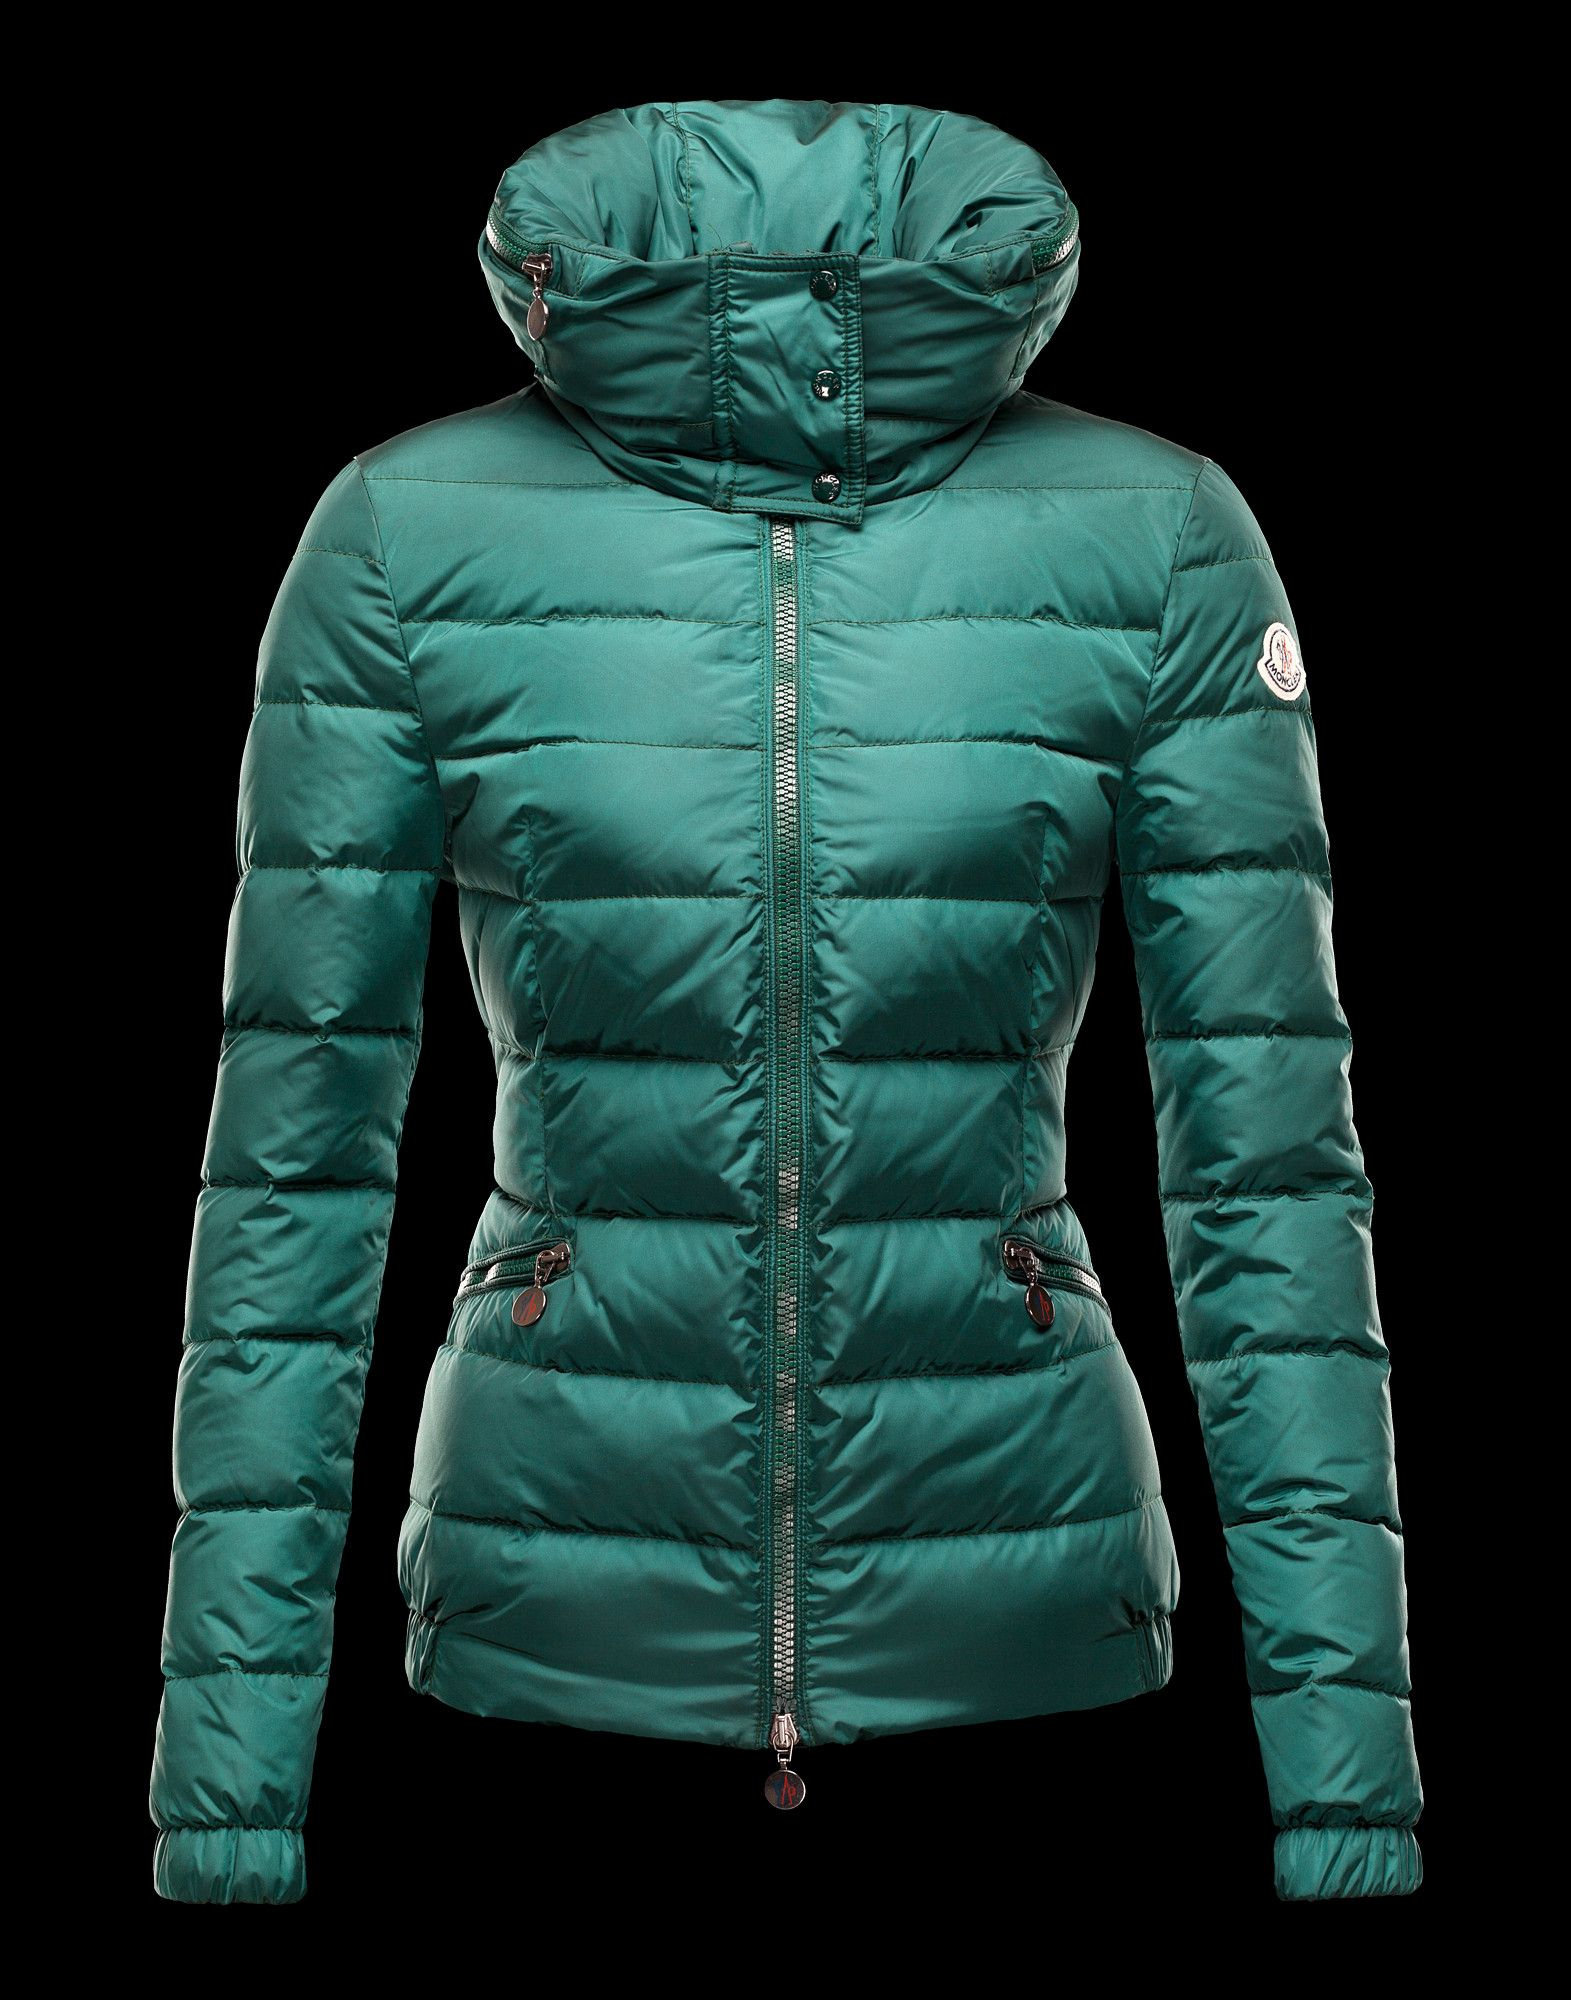 e73a3448b Clothing and down jackets for men, women and kids | Ski & Aprés Ski ...